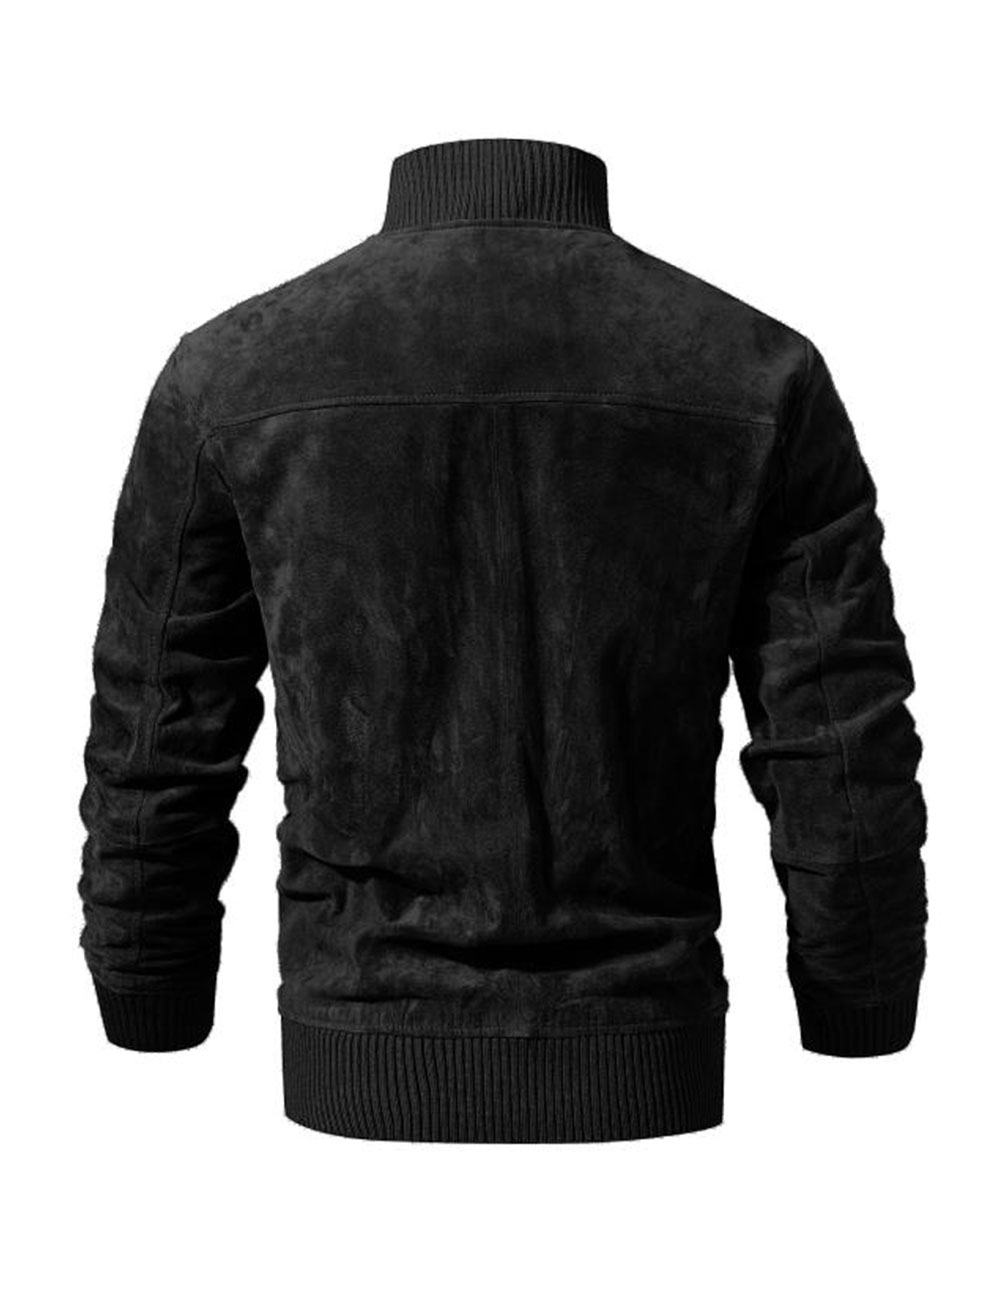 HTB12dDdlBjTBKNjSZFuq6z0HFXaT FLAVOR Men's Real Leather Jacket Men Pigskin Slim Fit Genuine Leather Coat With Rib Cuff Standing Collar